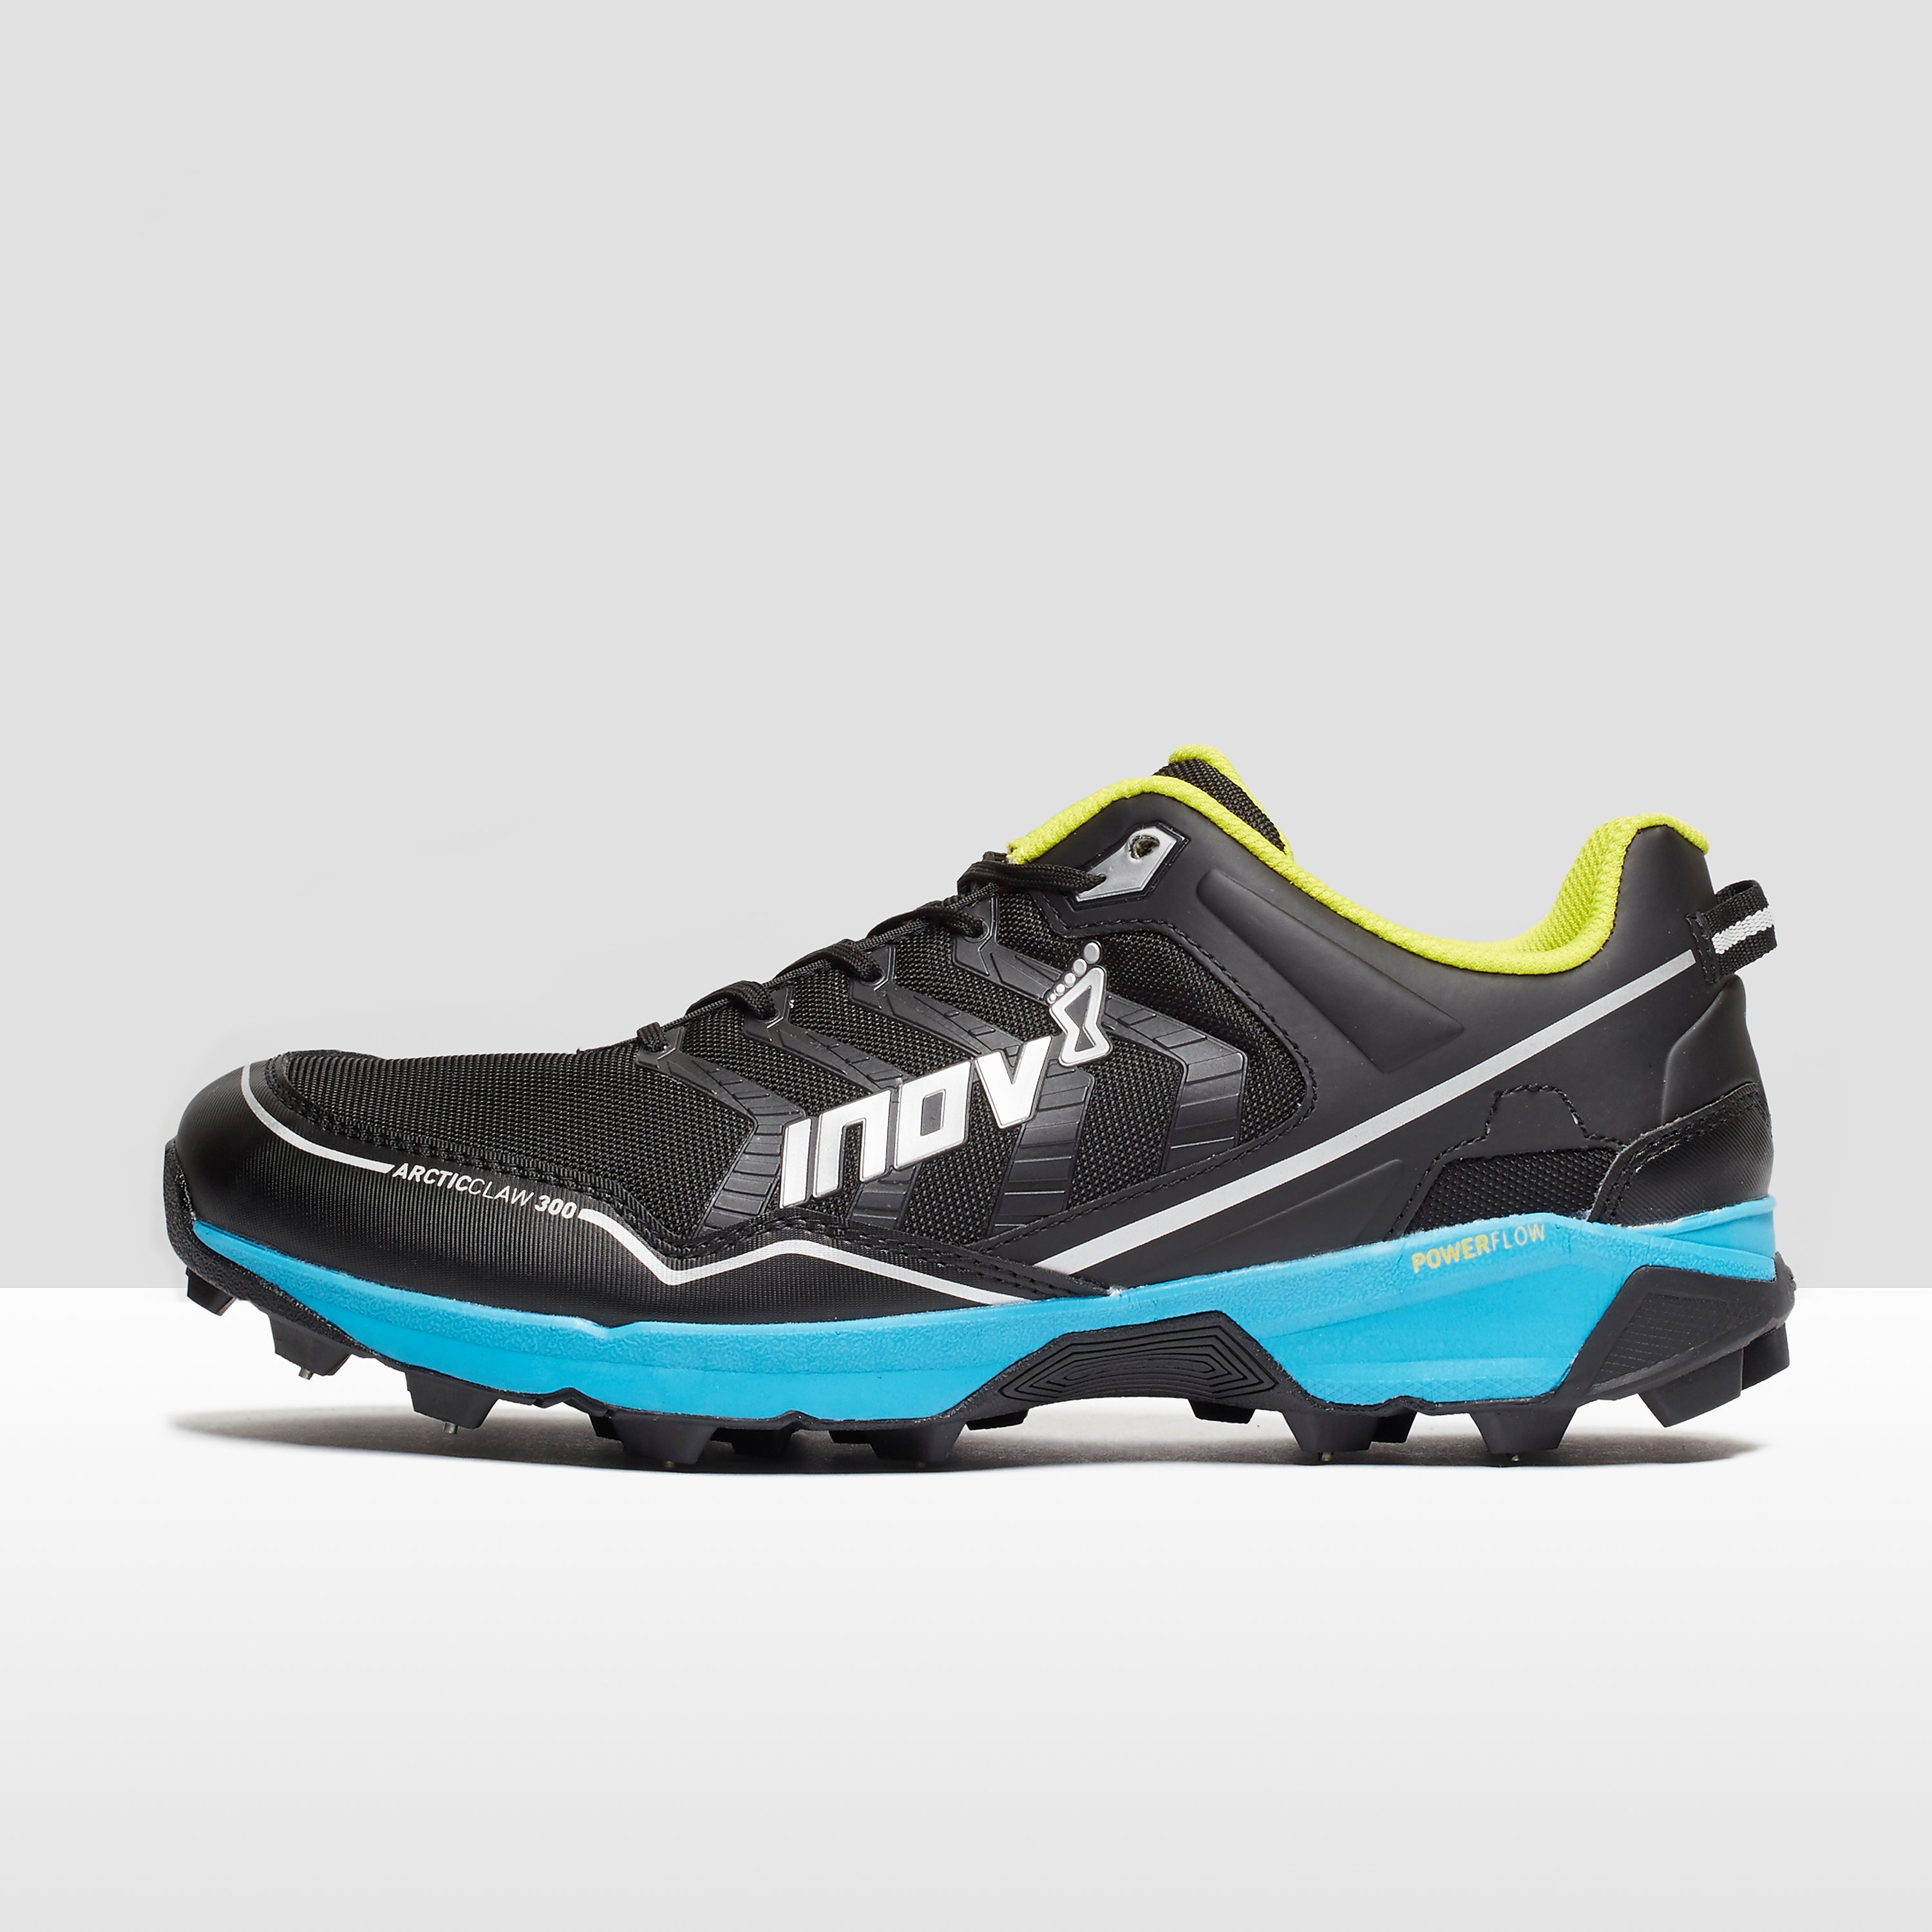 Inov-8 Artic Claw 300 Men's Trail Running Shoes